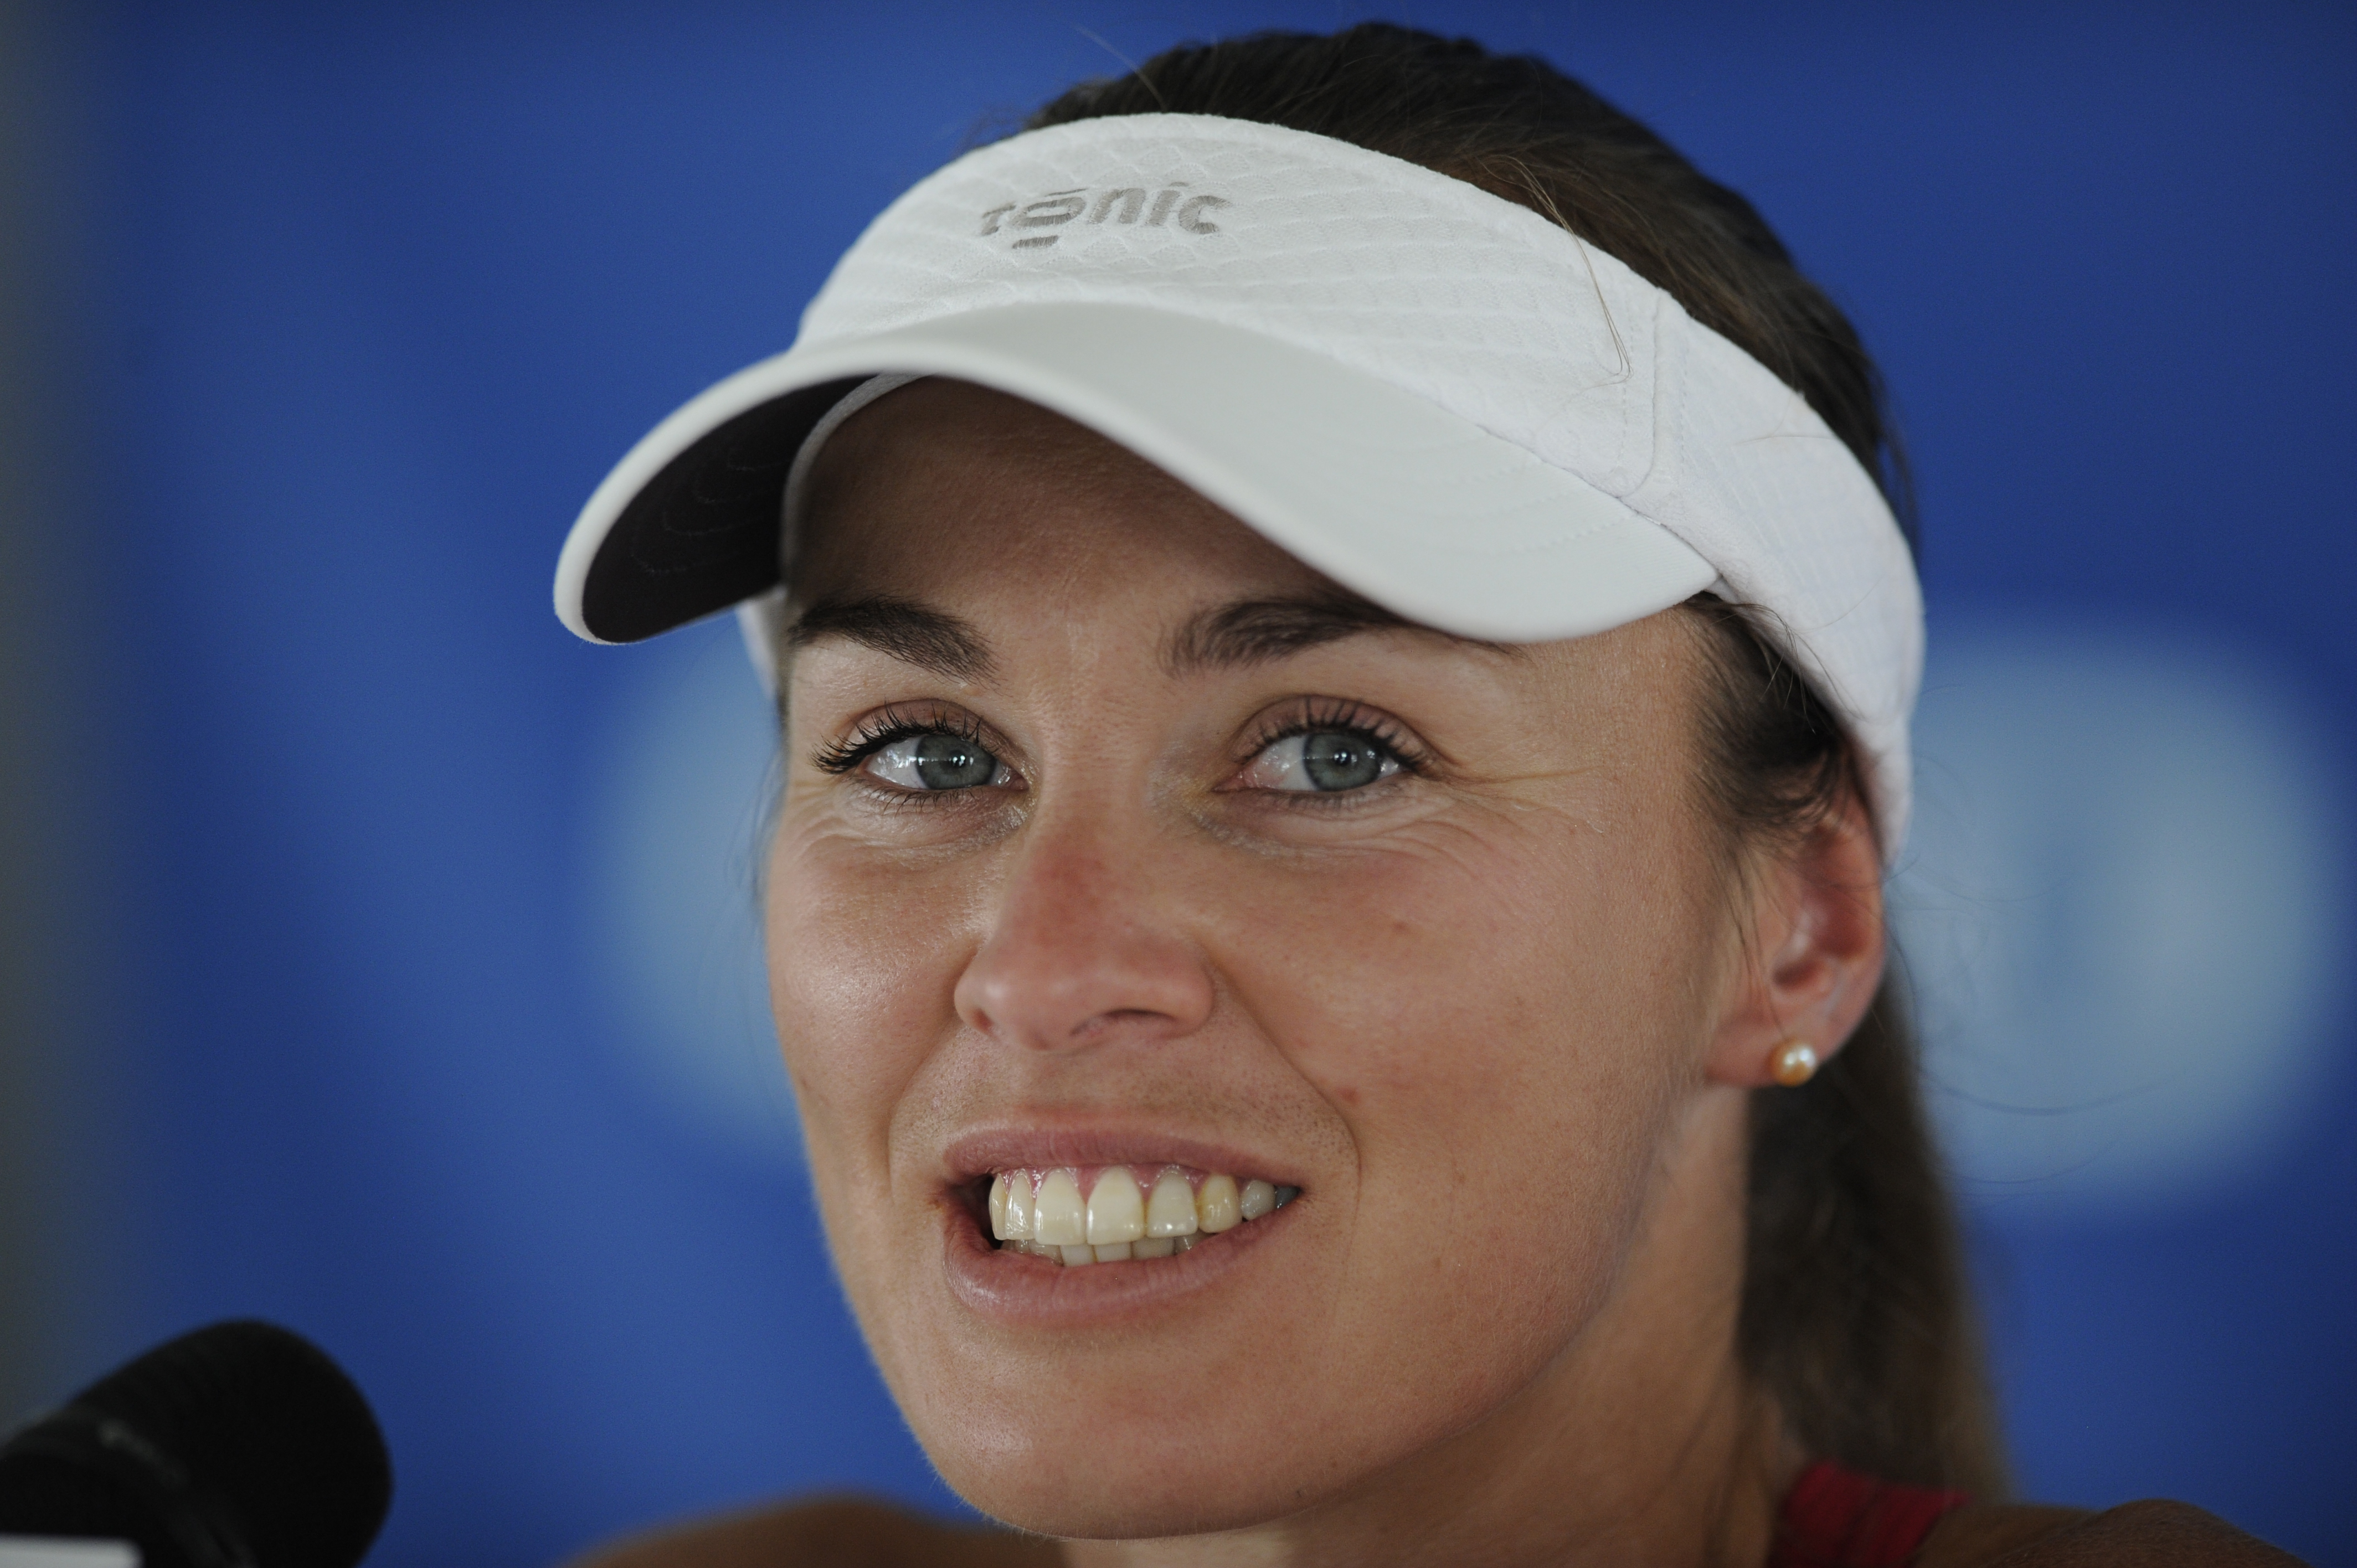 Martina Hingis family questioned after husband claims